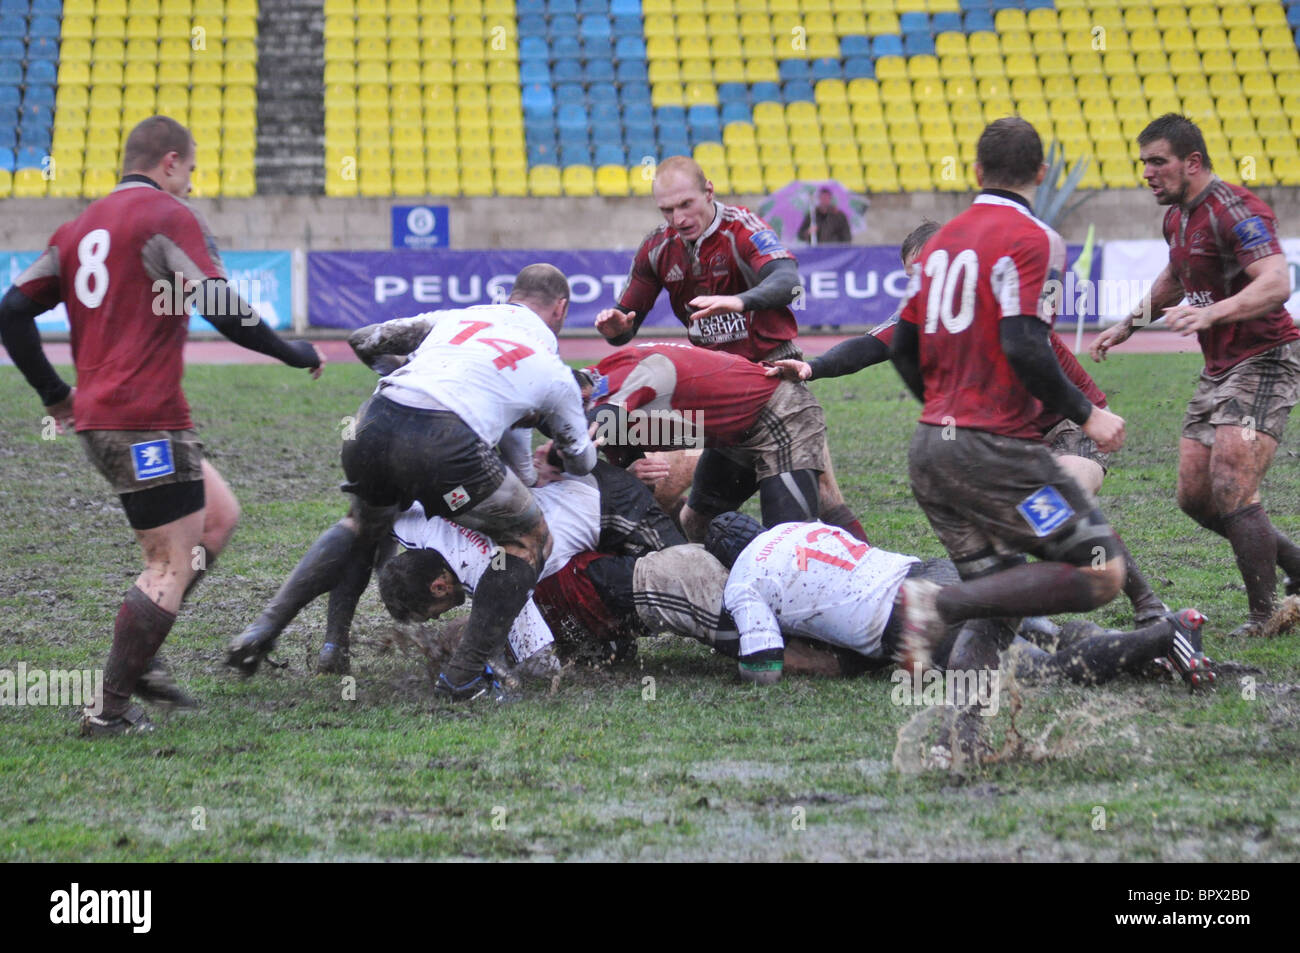 Match de rugby coupe d'Europe des nations : la Russie 14 - 10 Portugal Photo Stock